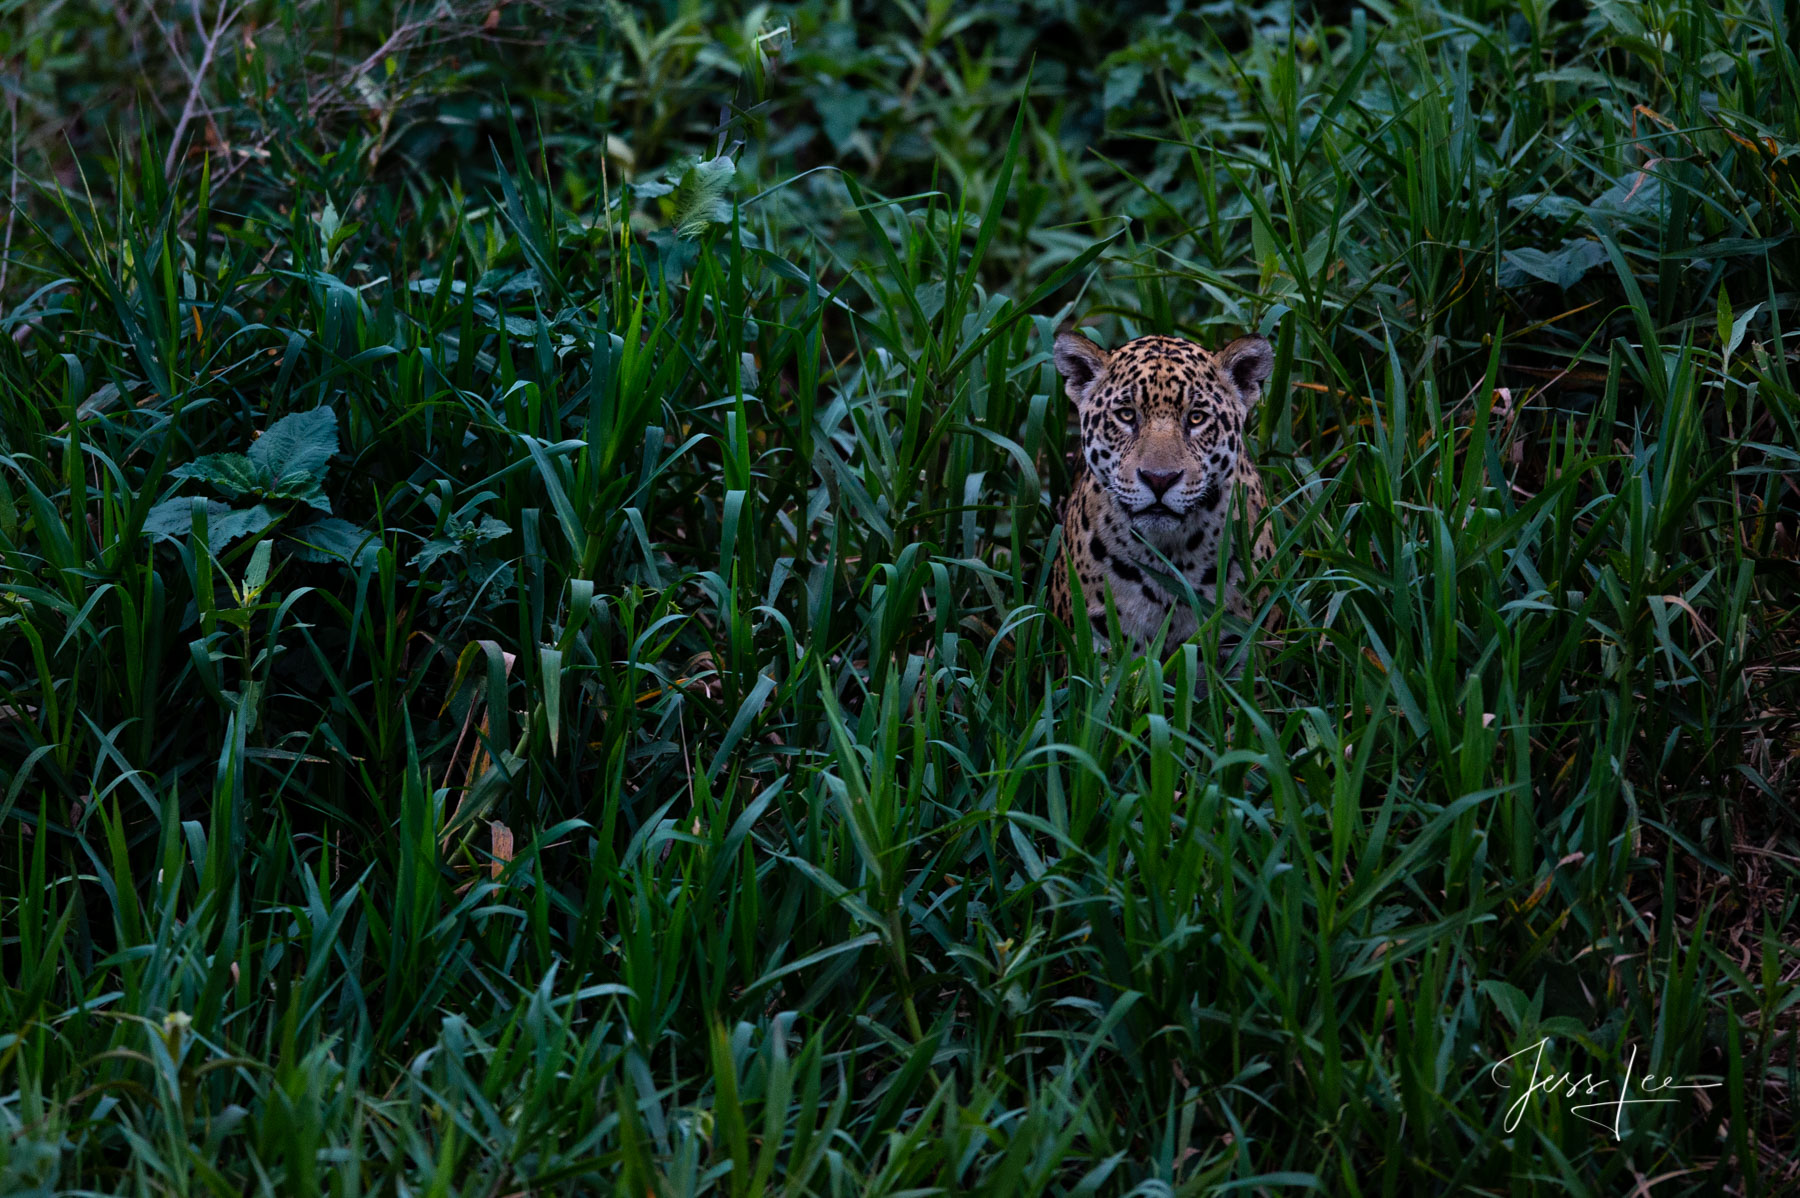 Fine art Jaguar waiting for the prey print limited edition of 300 luxury prints by Jess Lee. All photographs copyright © Jess...